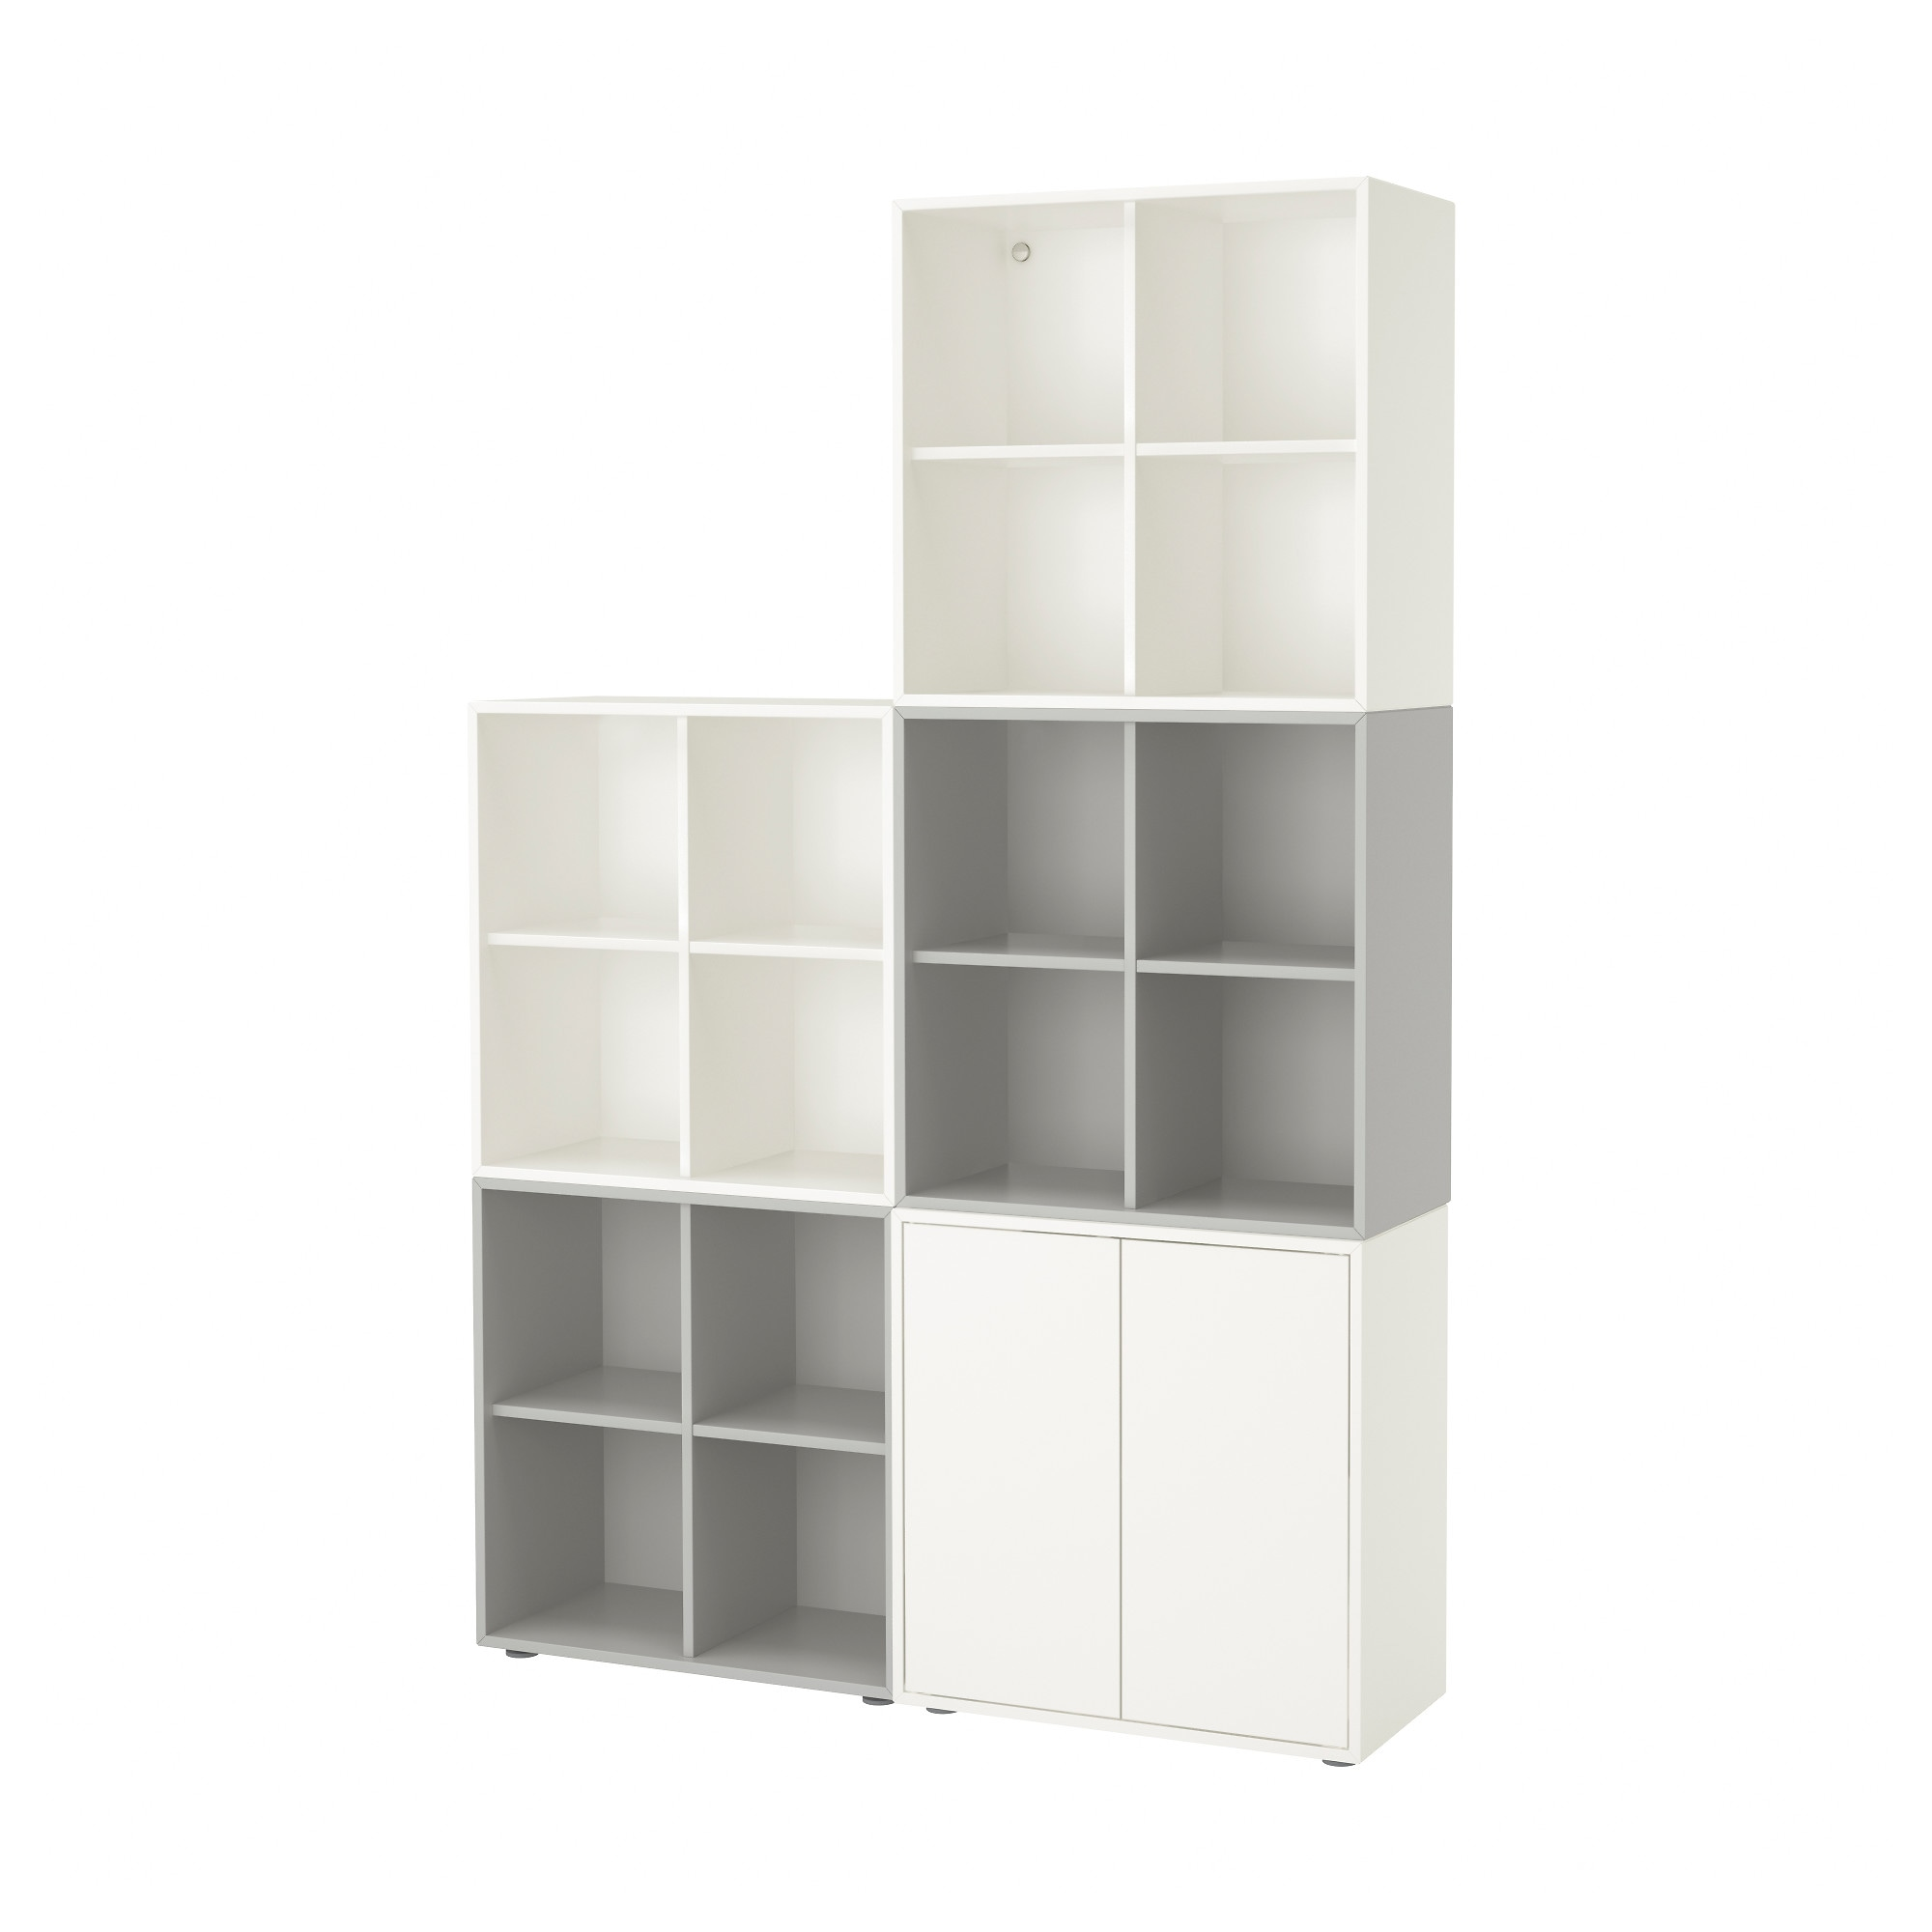 Eket Cabinet Combination With Feet White Light Grey